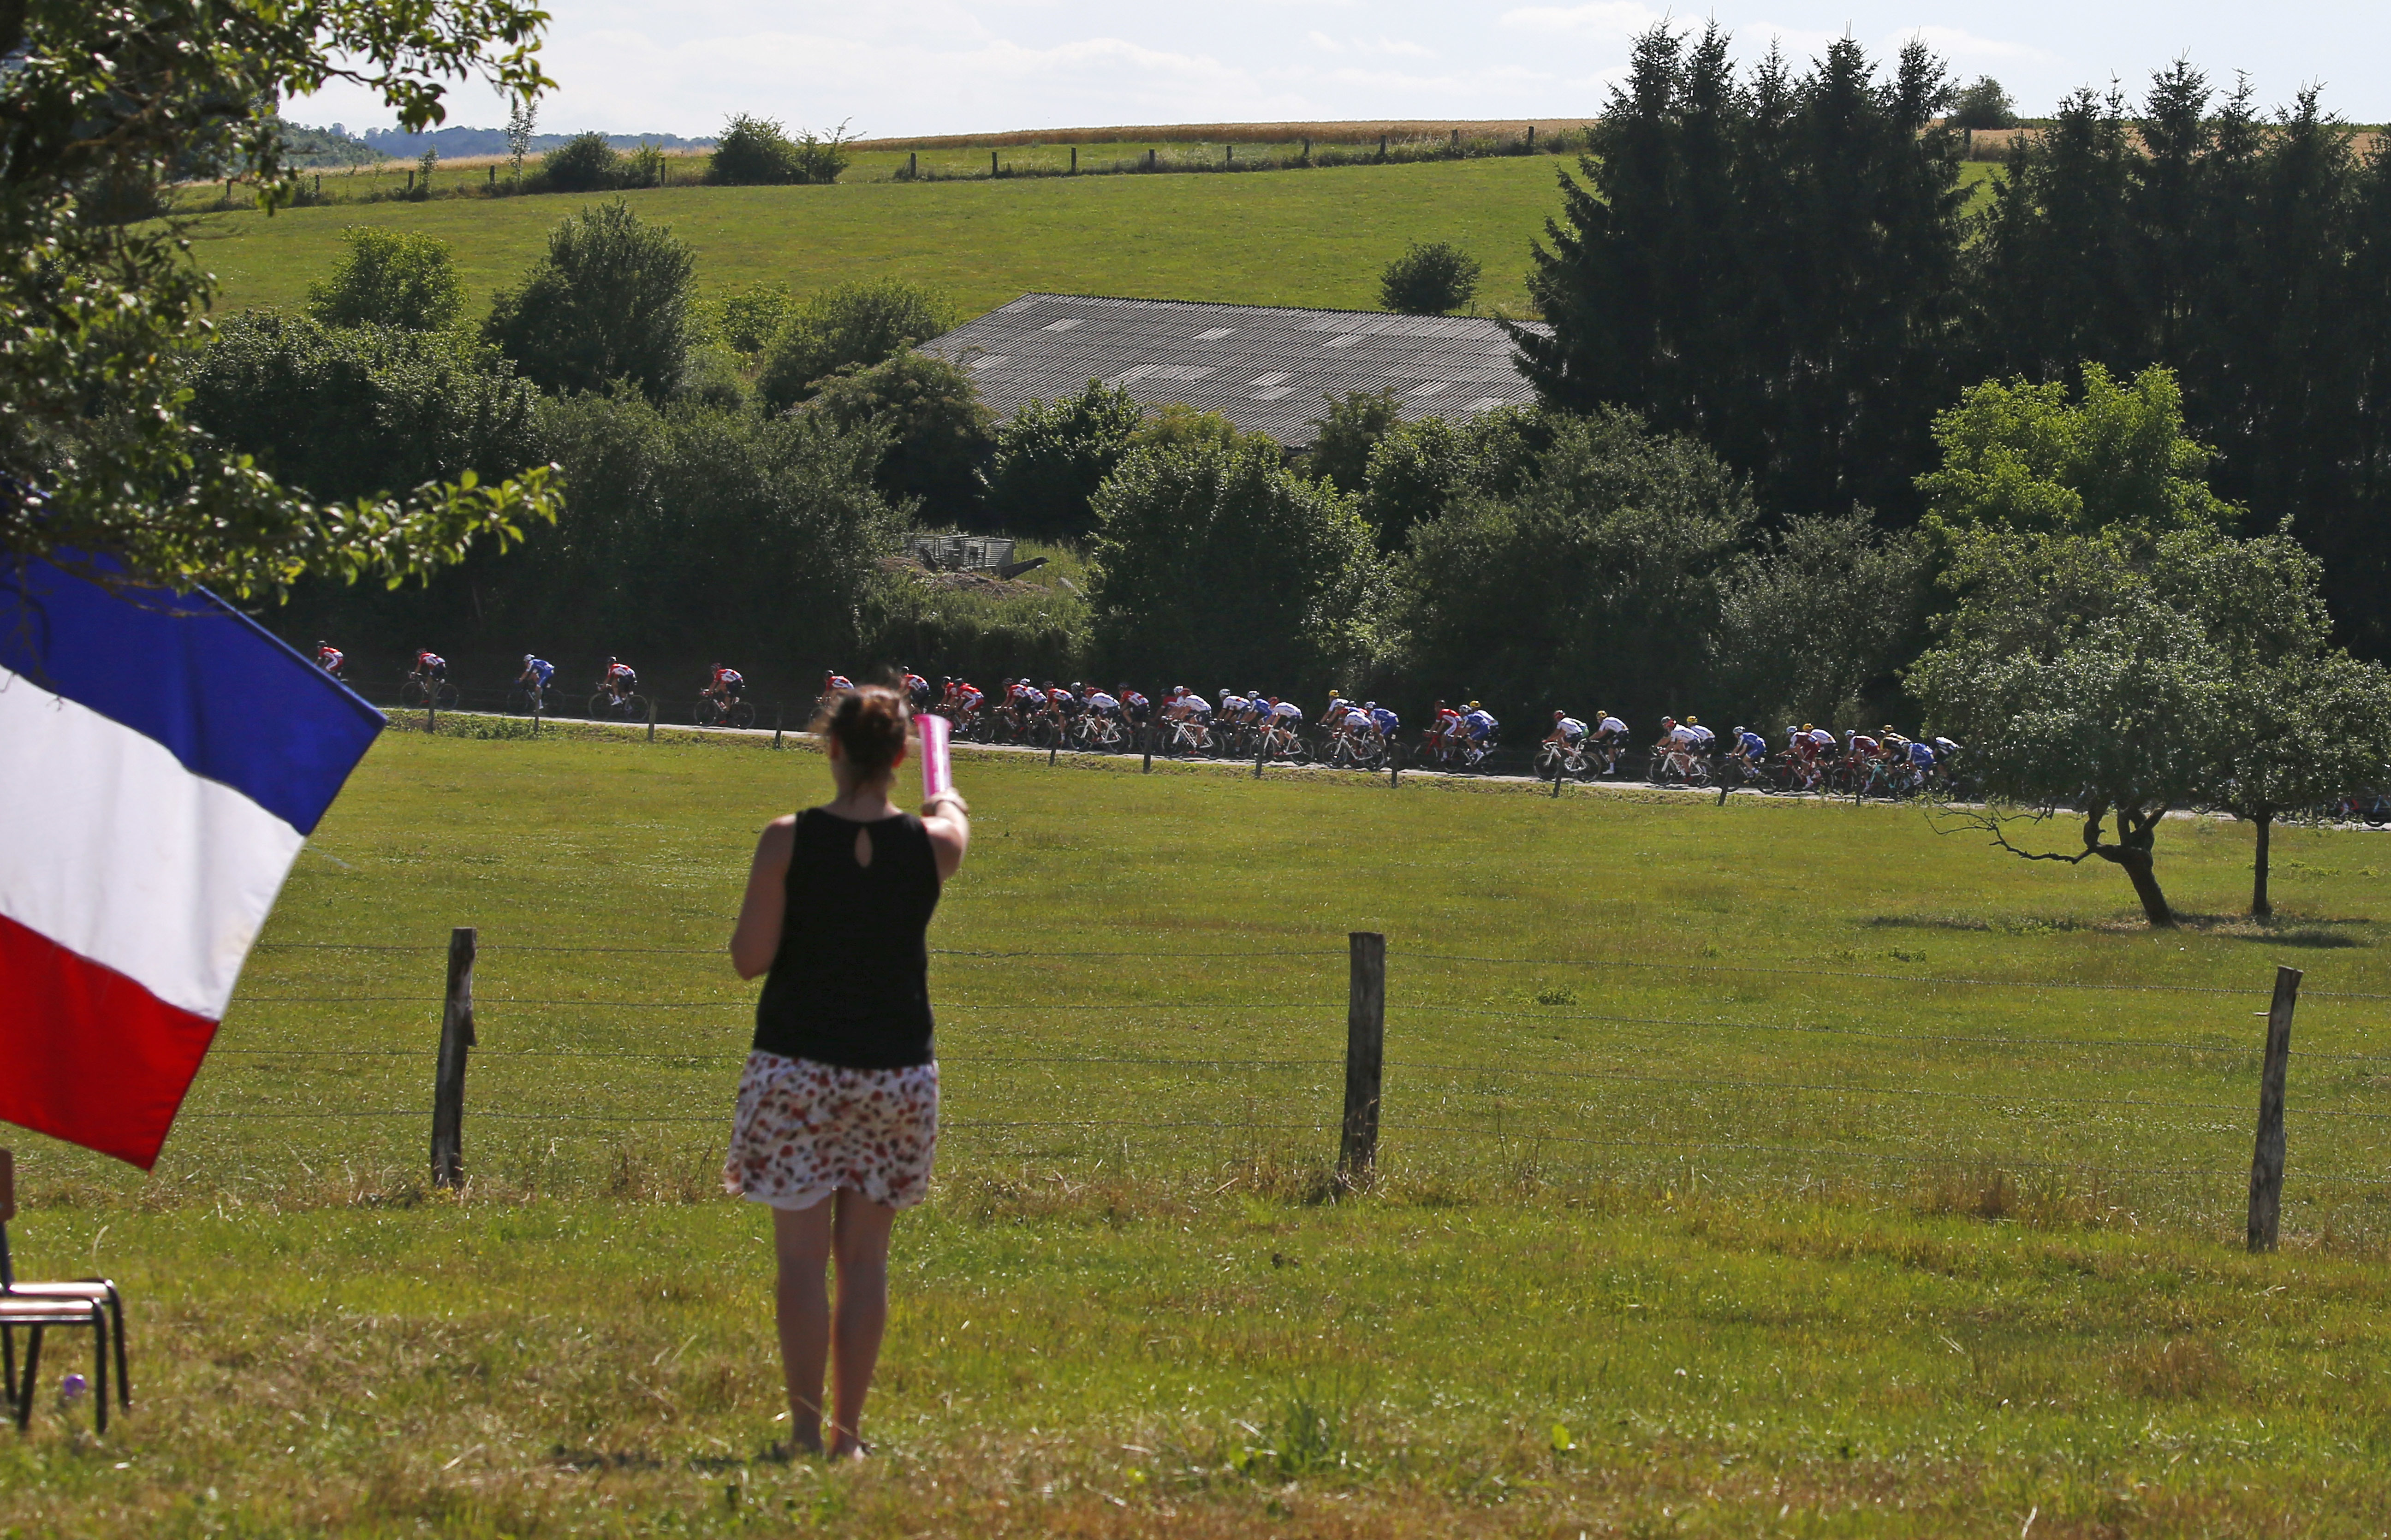 The French flag flies as a spectator points at the pack during the fourth stage of the Tour de France cycling race over 207.5 kilometers (129 miles) with start in Mondorf-les-Bains, Luxembourg, and finish in Vittel, France, Tuesday, July 4, 2017. (AP Photo/Peter Dejong)